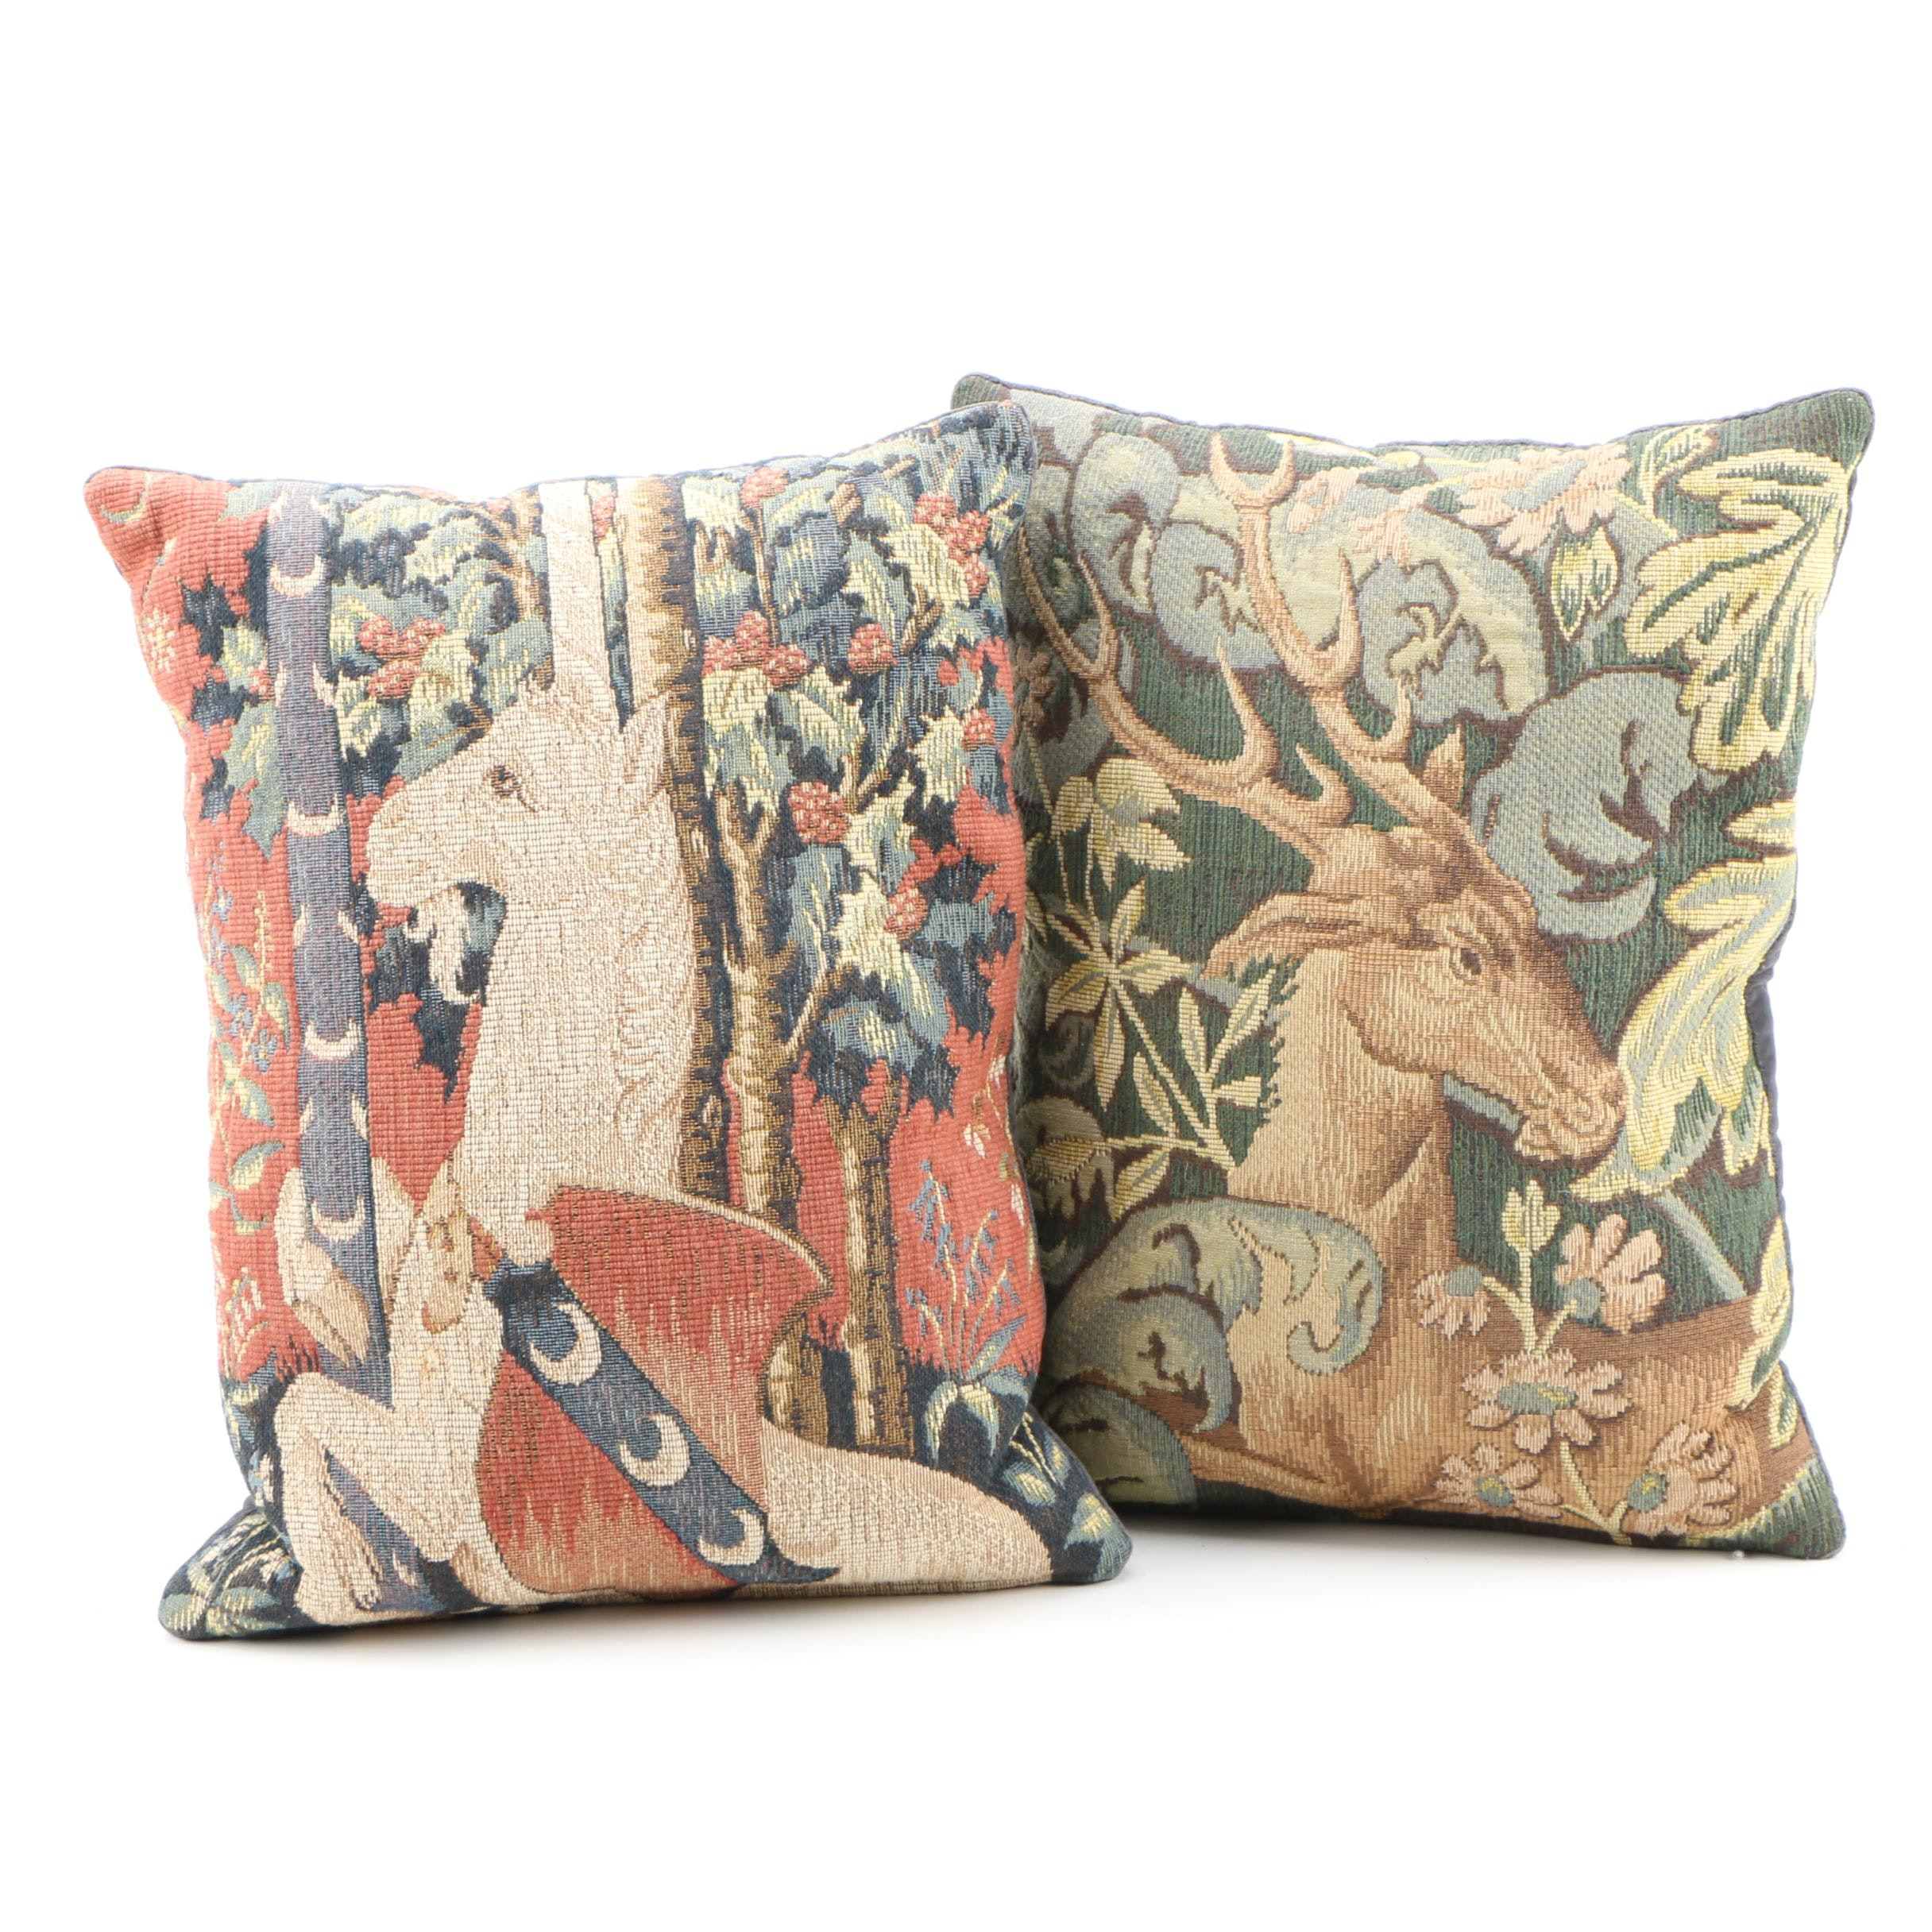 Hand Quilted And Cross Stitch Pillows | EBTH